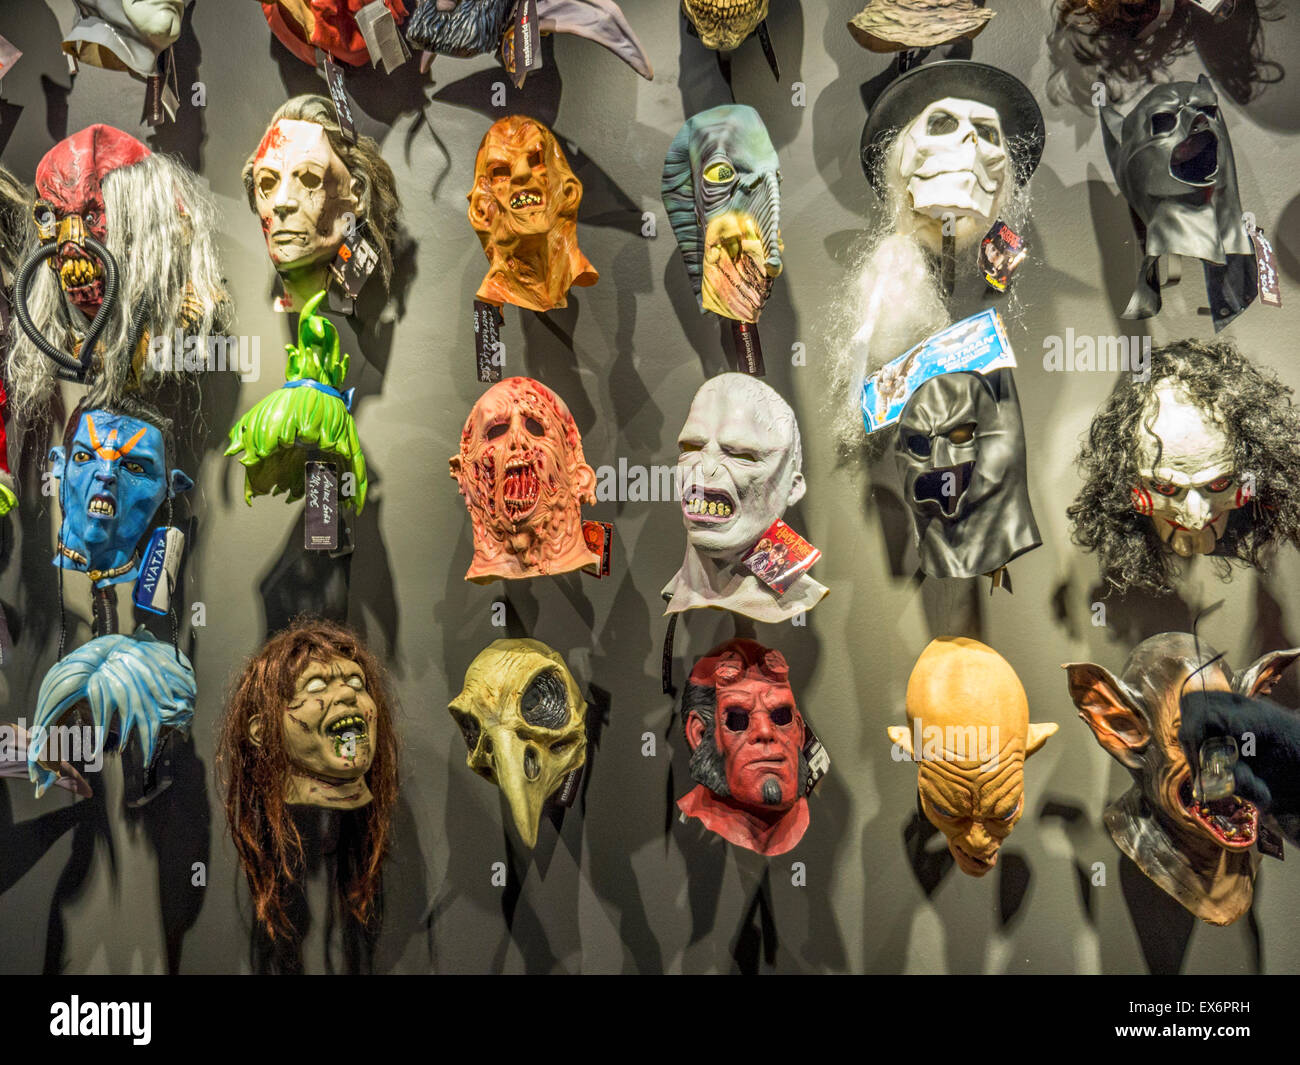 Berlin Maskworld, Mask Wall In Store Selling Masks, Fancy Dress Outfits,  Masquerade Costumes